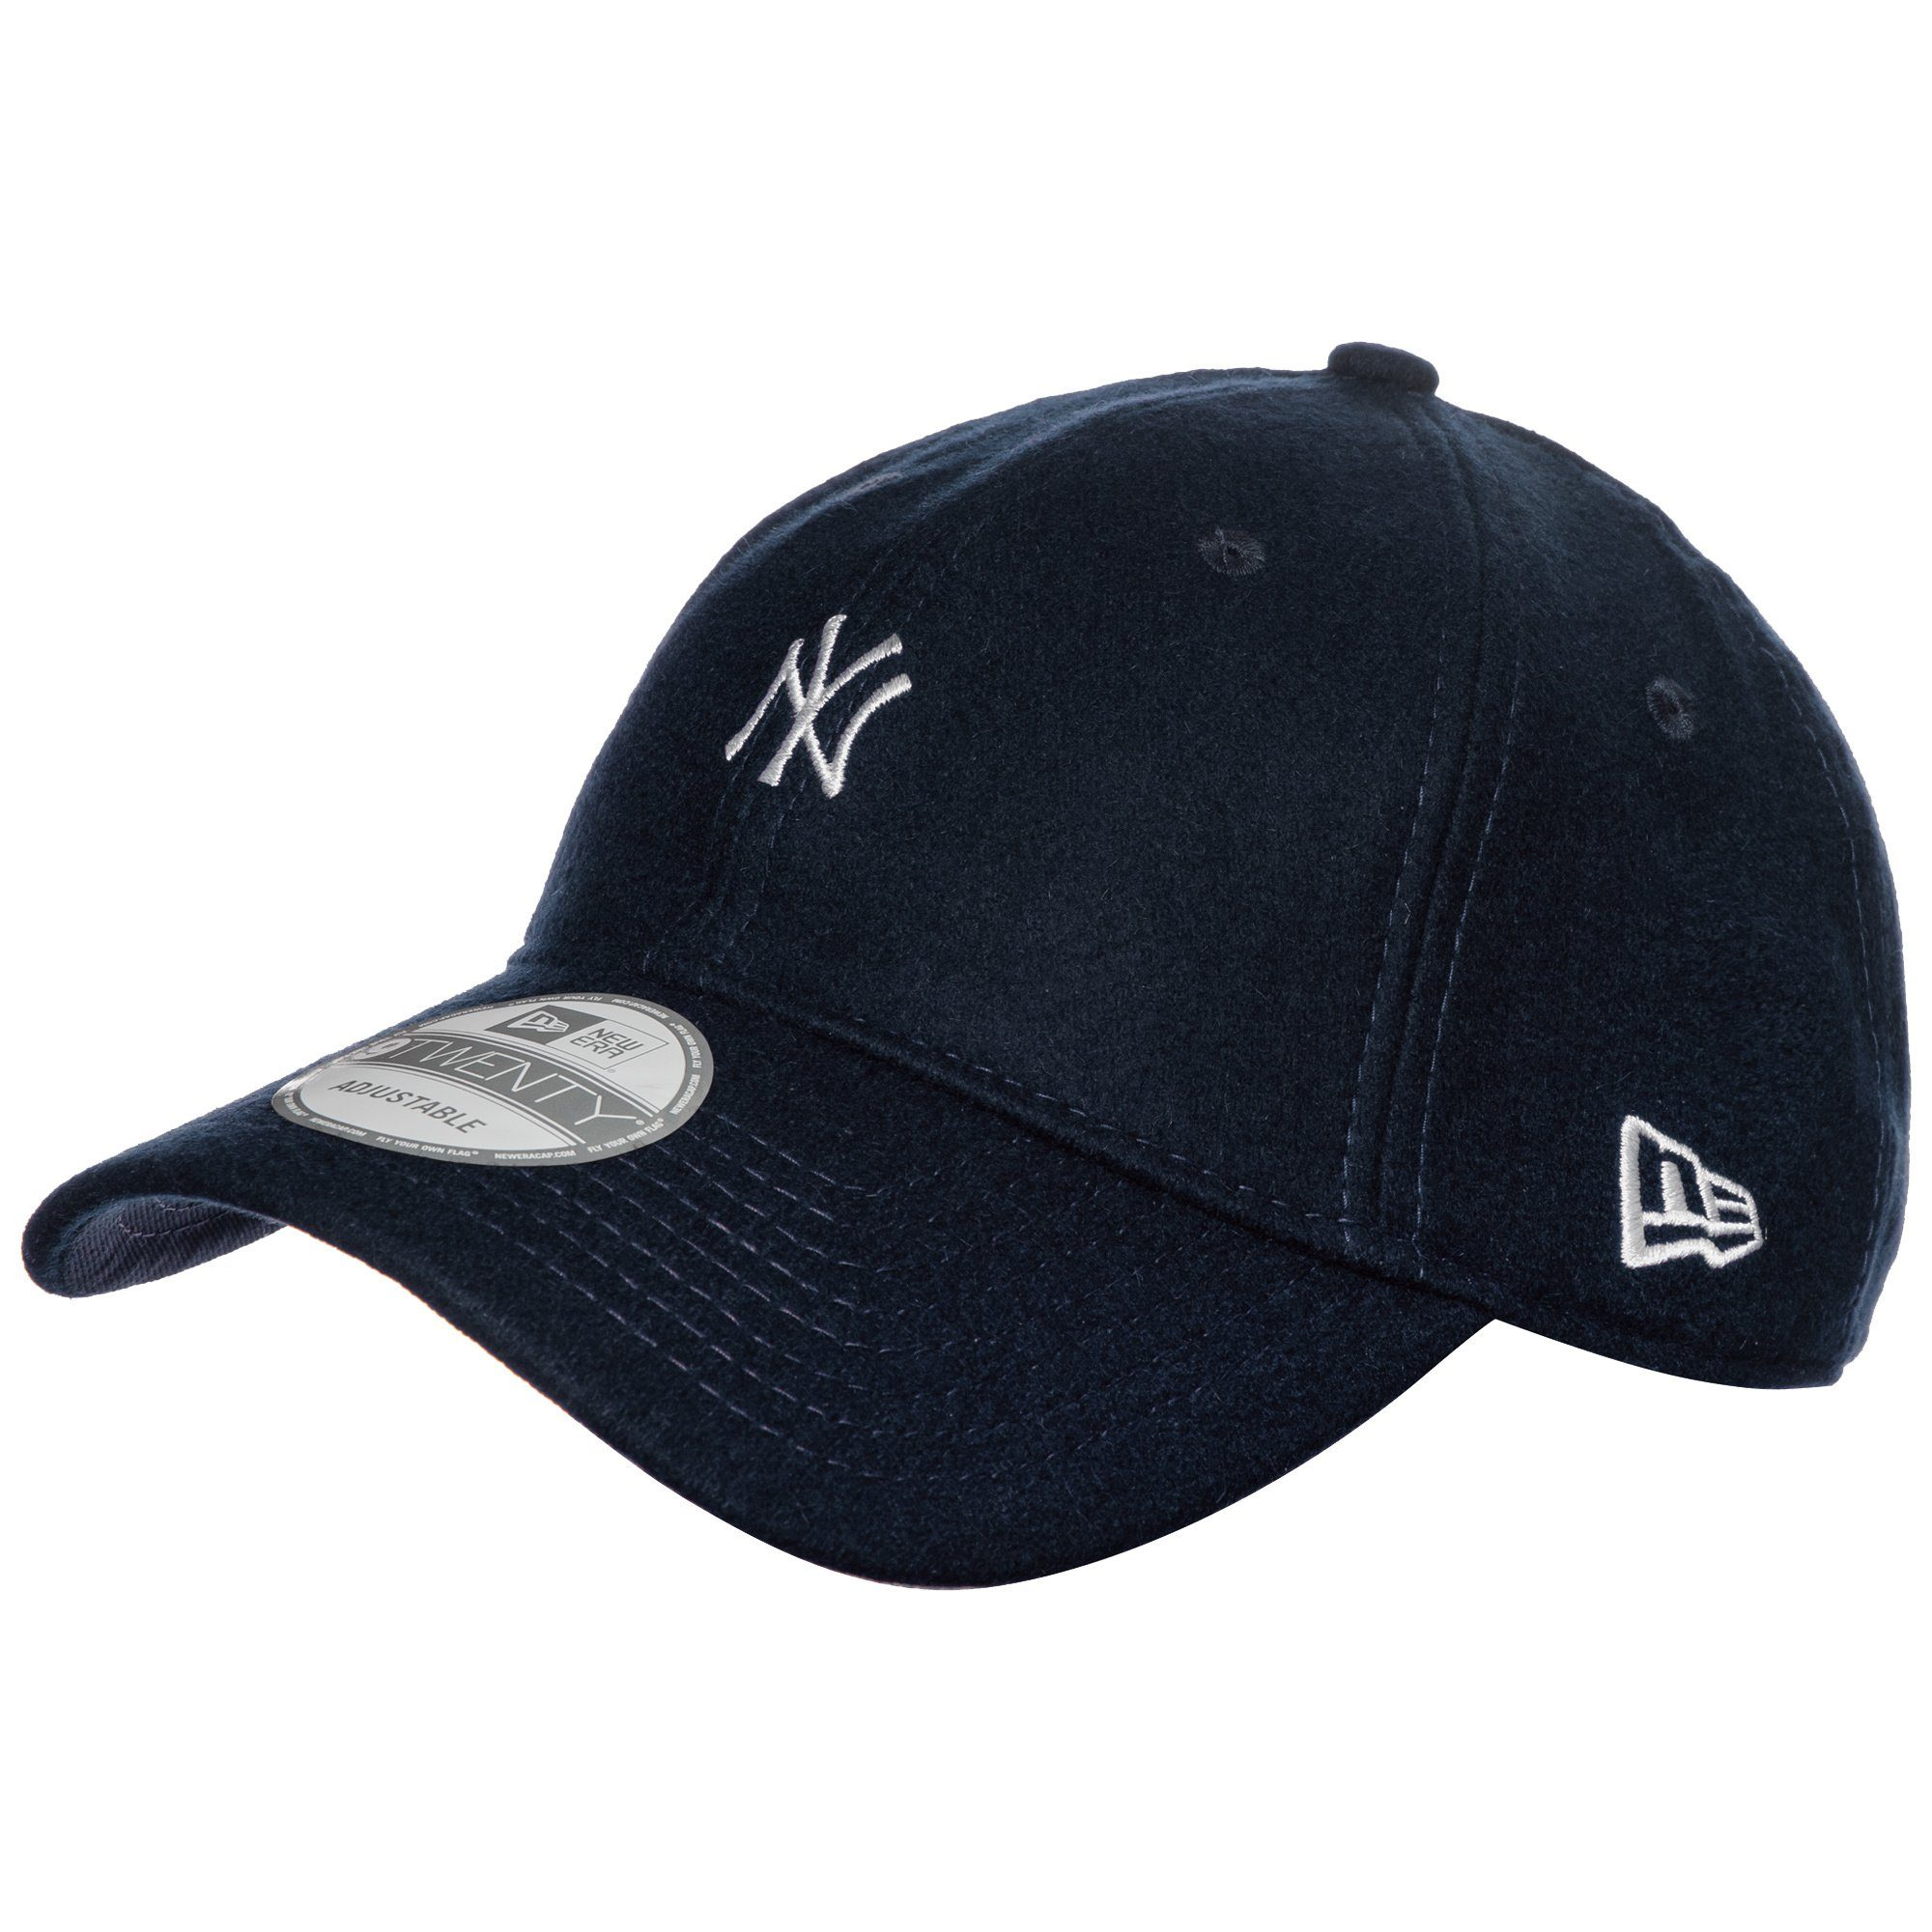 New Era 9TWENTY MLB Wool New York Yankees Cap